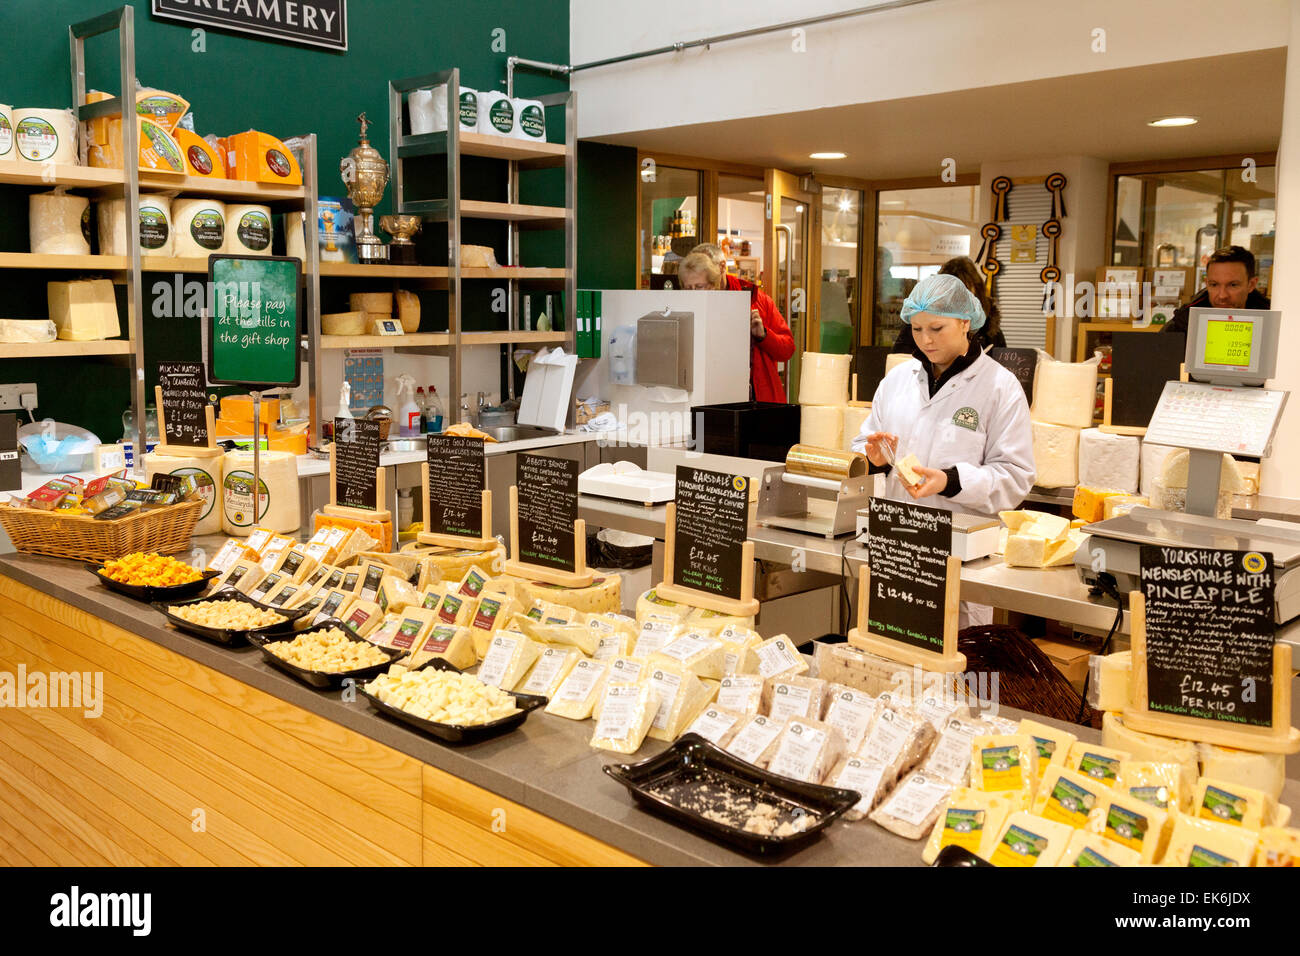 The sales counter selling cheeses, The Cheese shop, Wensleydale Creamery, Hawes, North Yorkshire Dales, England Stock Photo